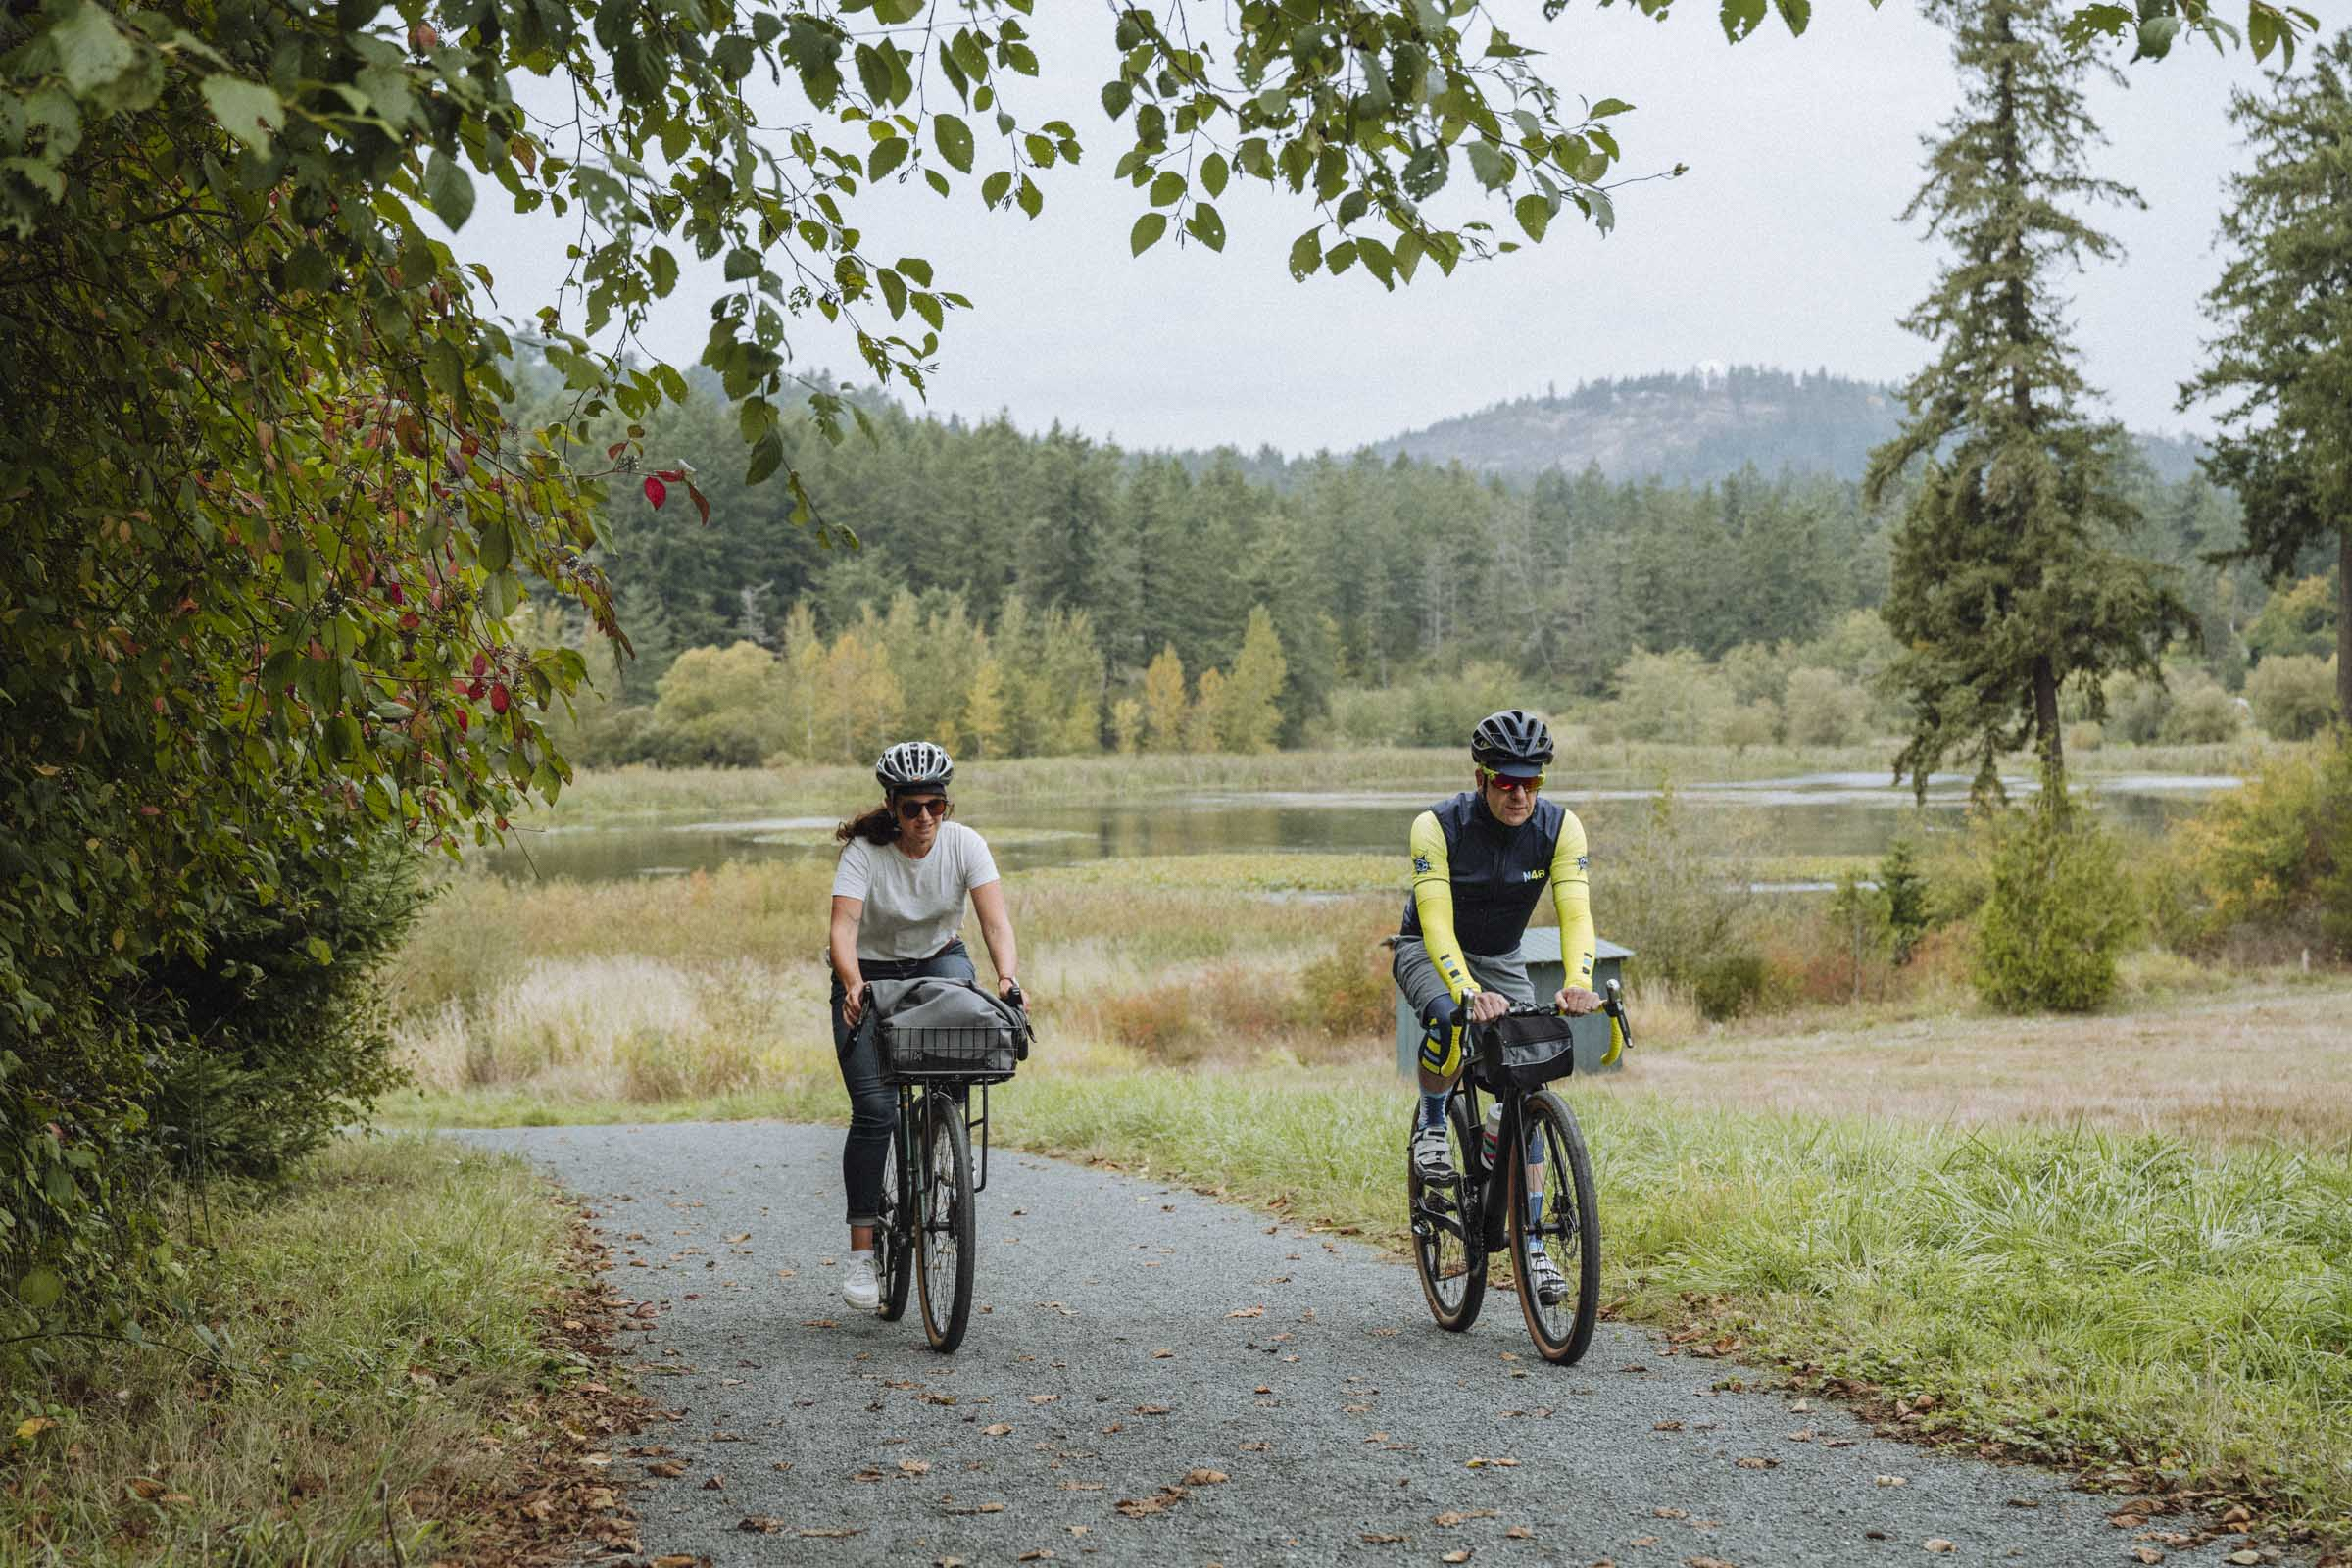 Riding one of the many nice interurban trails that connect Greater Victoria